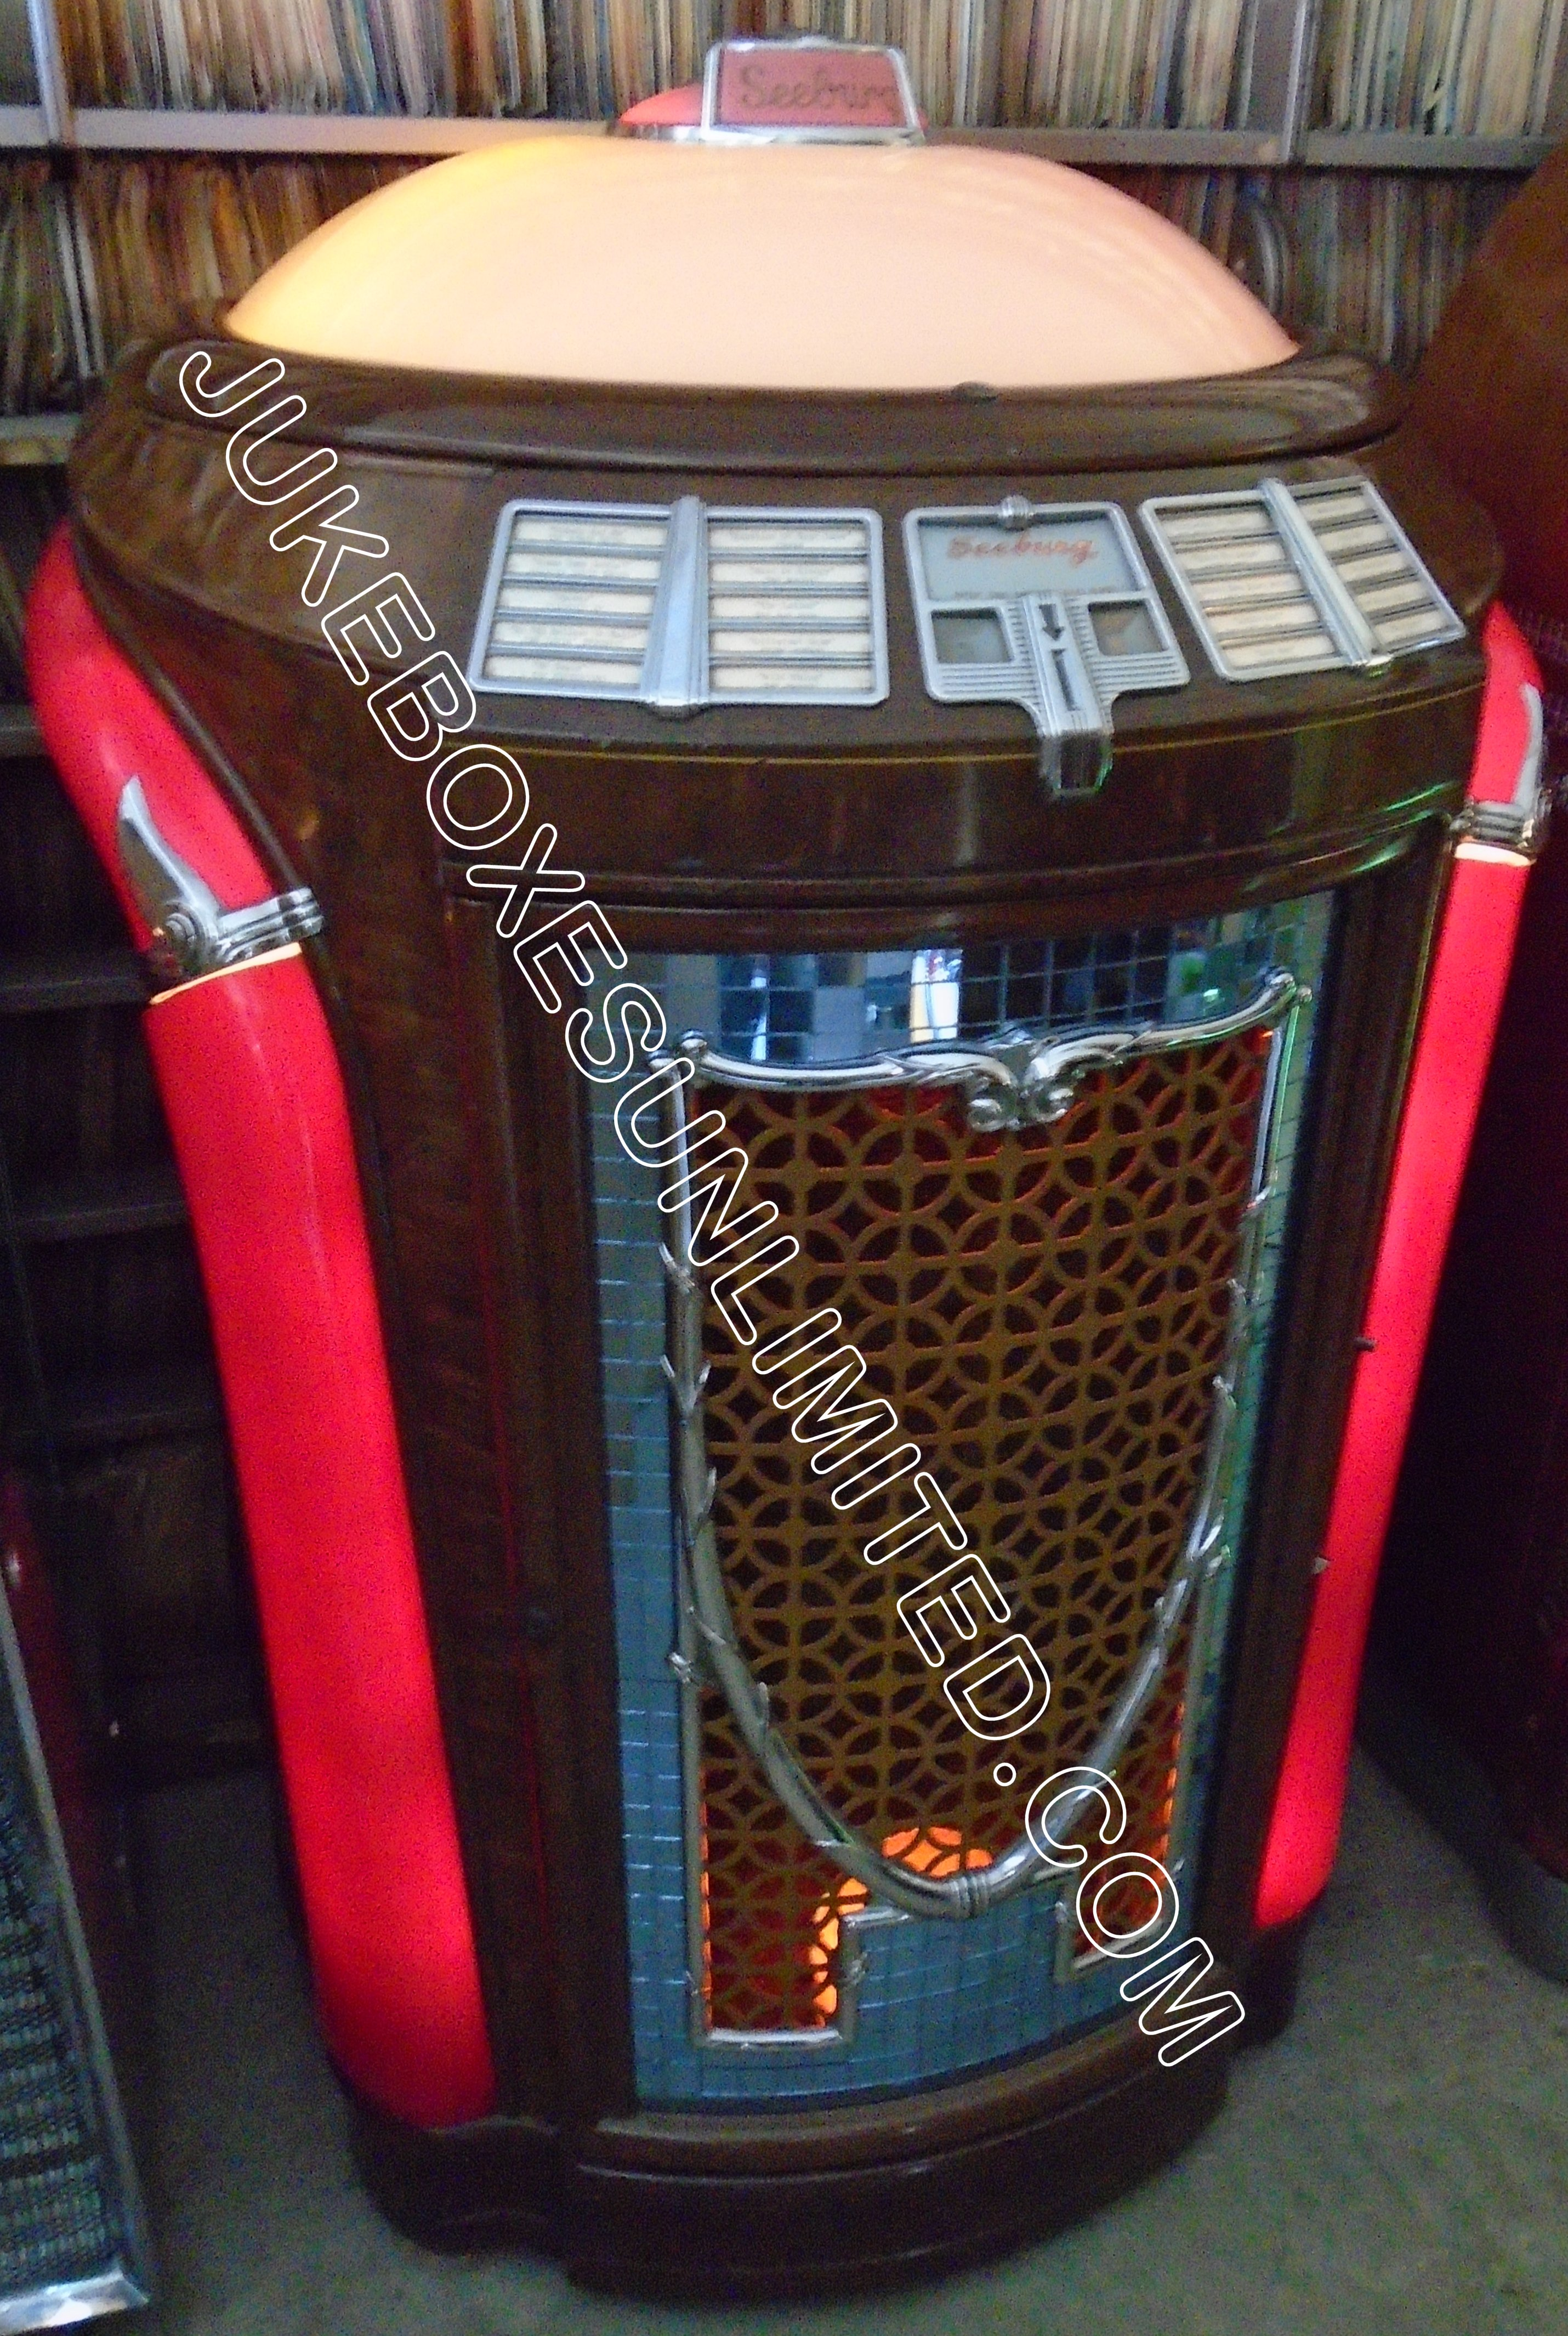 A Seeburg Symphonola 1 48 Trashcan Jukebox Model 148 20 Selections 78rpm Circa 1948